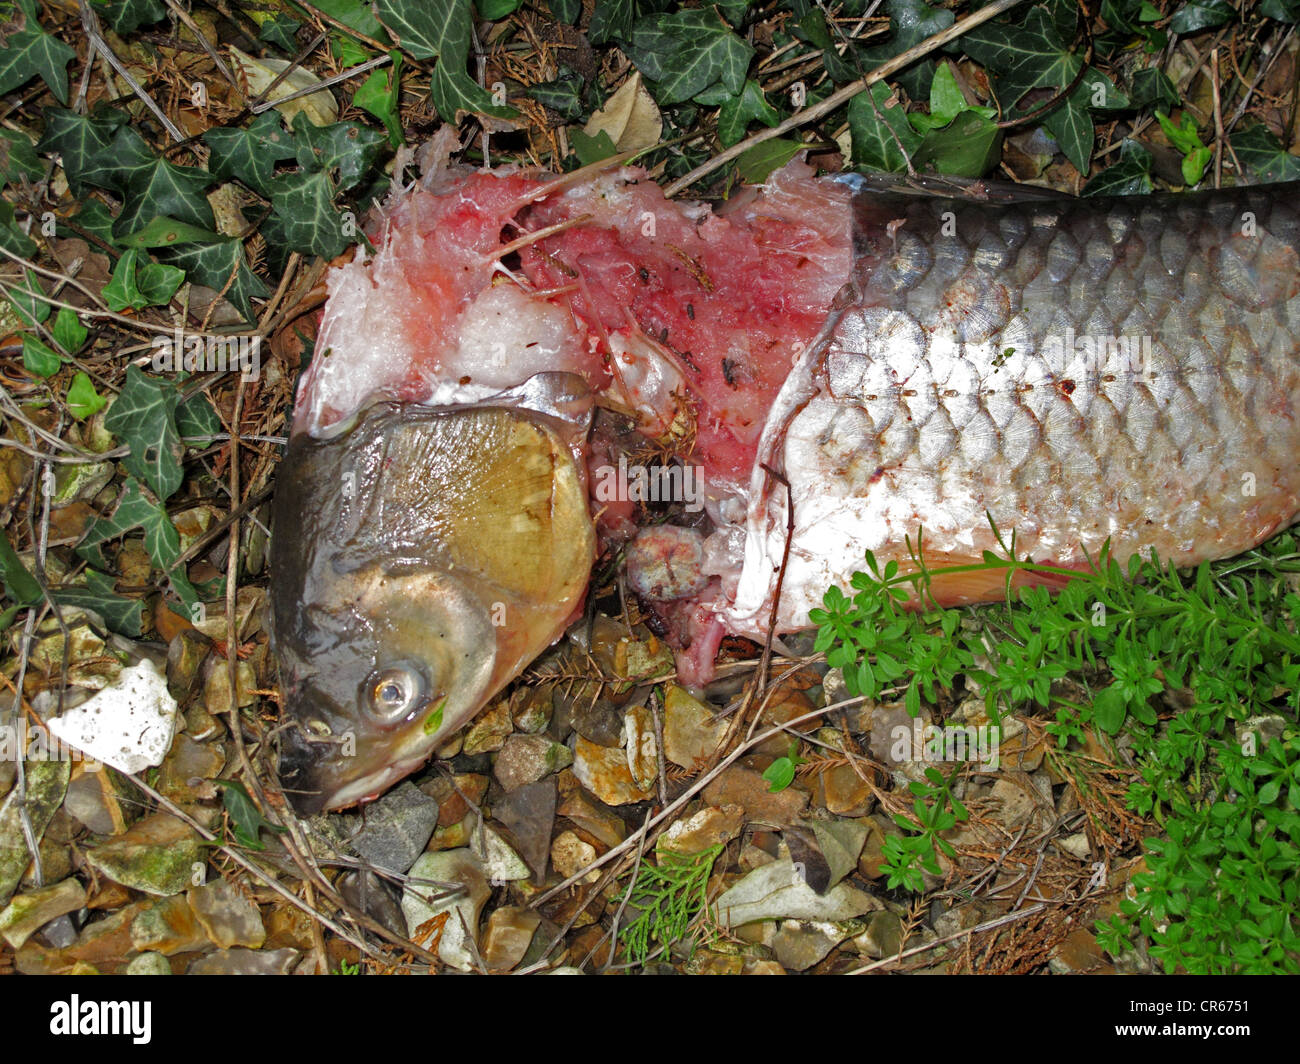 A Grass Carp From A Garden Pond Killed And Partly Eaten By